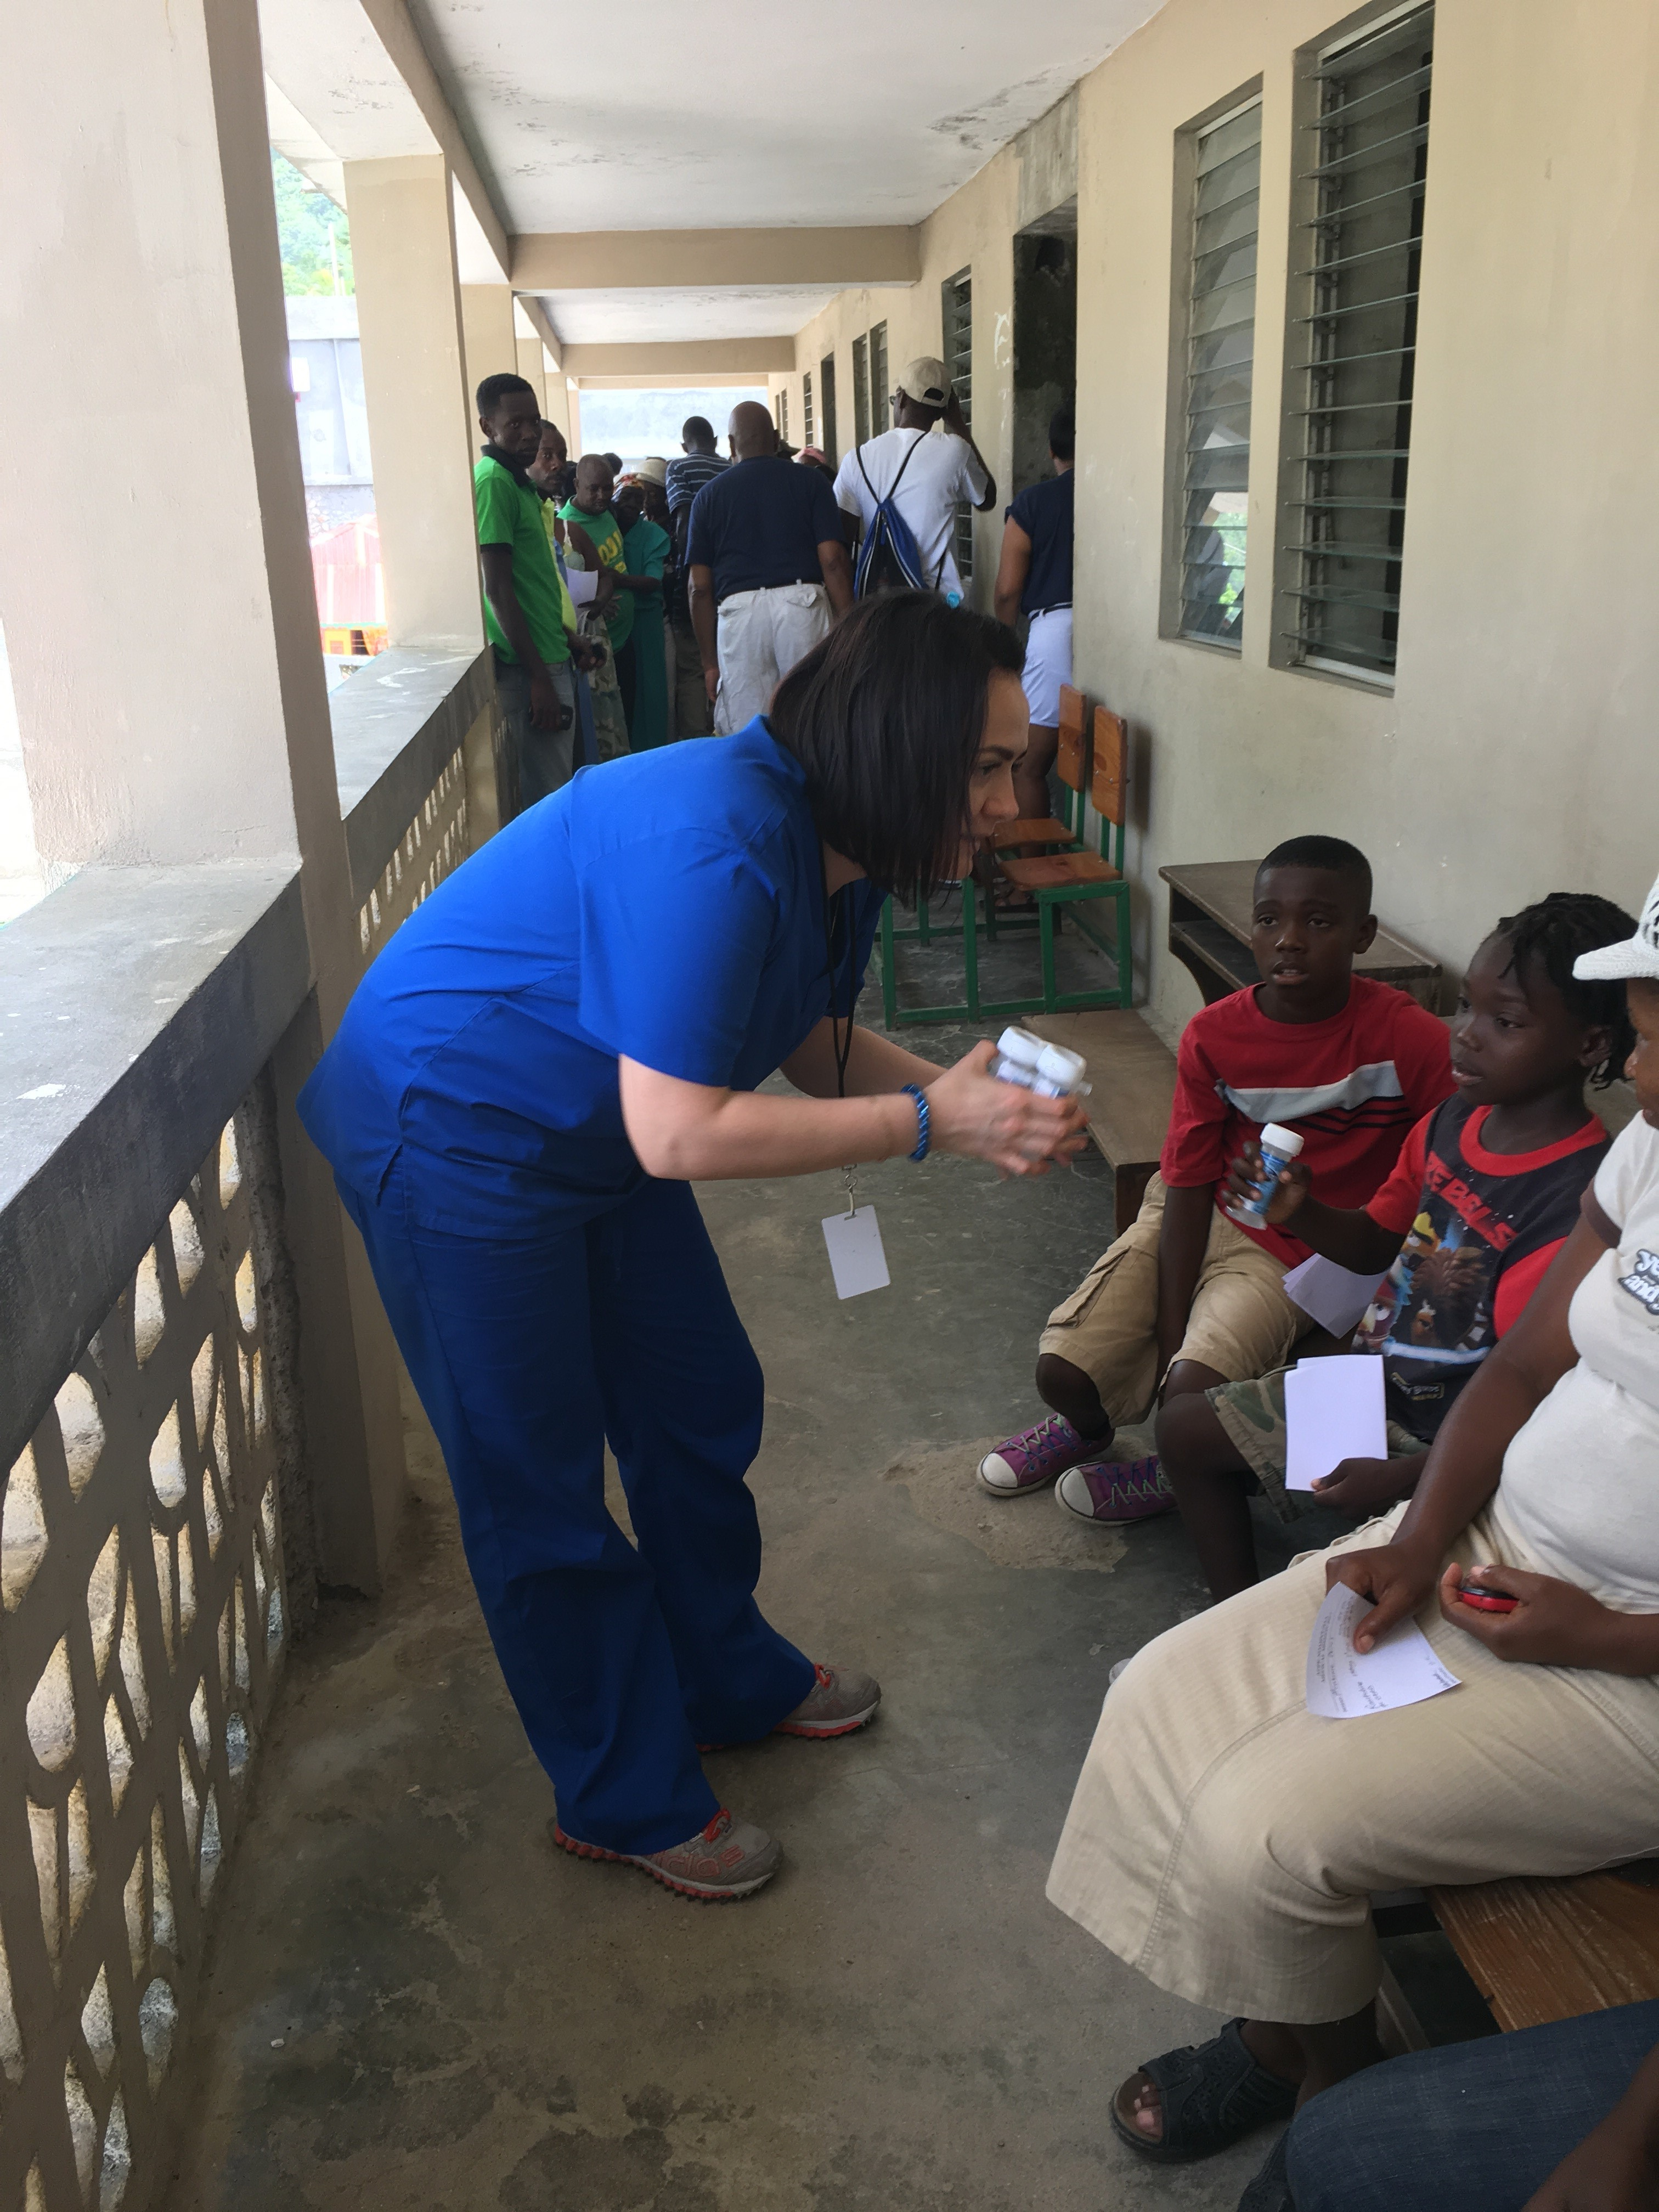 P4 Olga Rashchupkina gives children Pedialyte in Haiti.